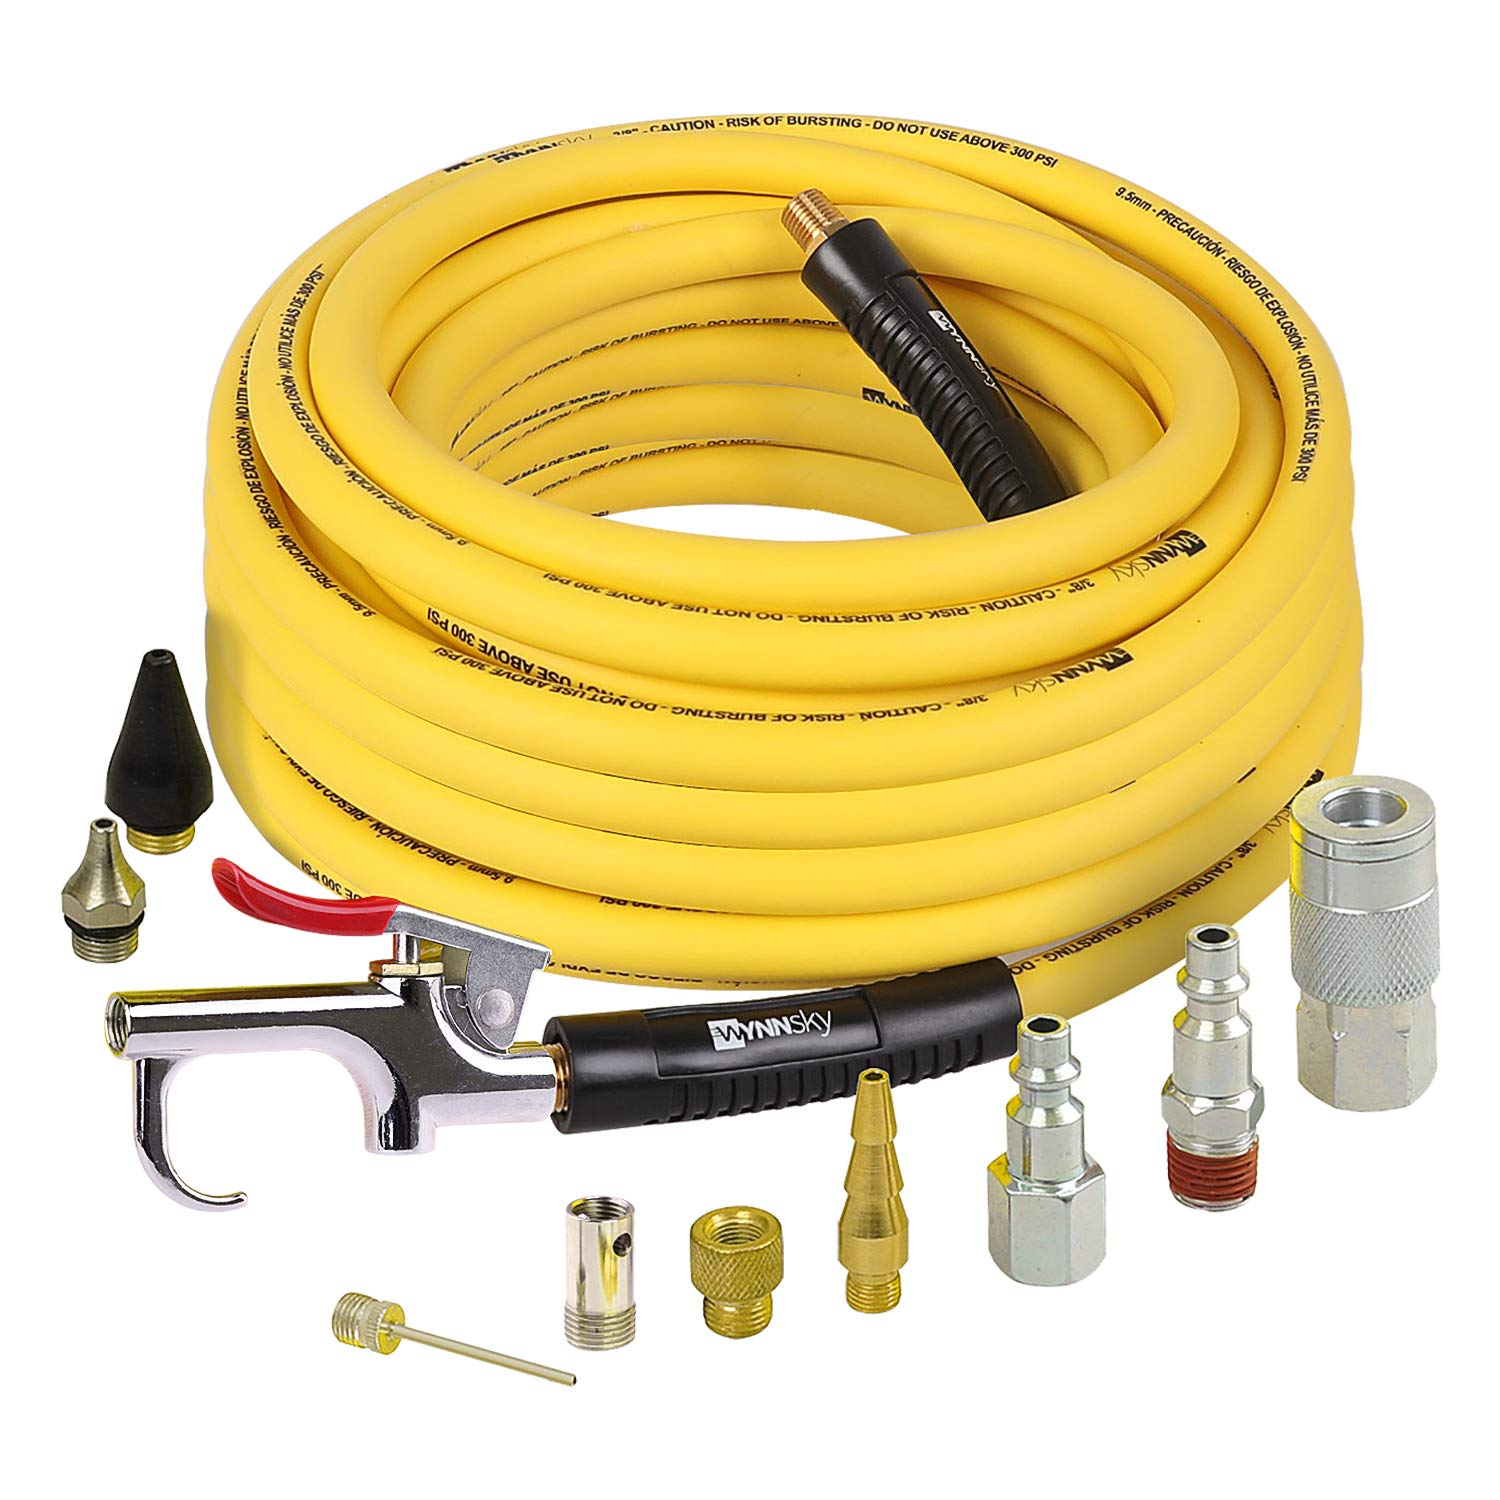 WYNNsky Air Compressor Accessories Kit, 3/8 Inch × 50 Feet Hybrid Air Hose with 1/4 Inch Male NPT Brass Connection, Bend Resistent, 3 Pieces Industrial Air Fittings, Air Blow Gun with 6 Pieces Nozzles by WYNNsky